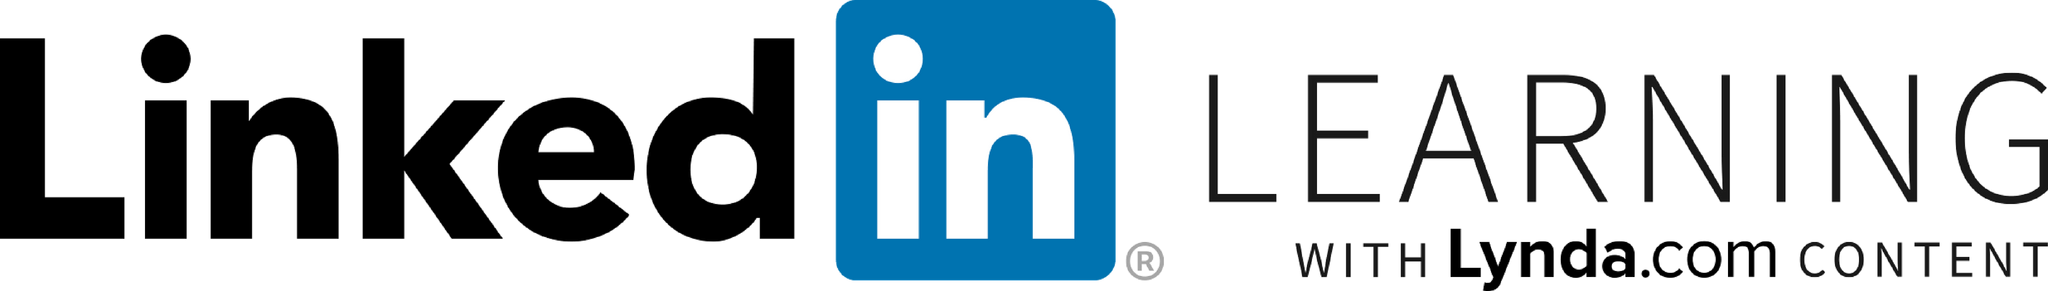 LinkedIn Learning with content from Lynda